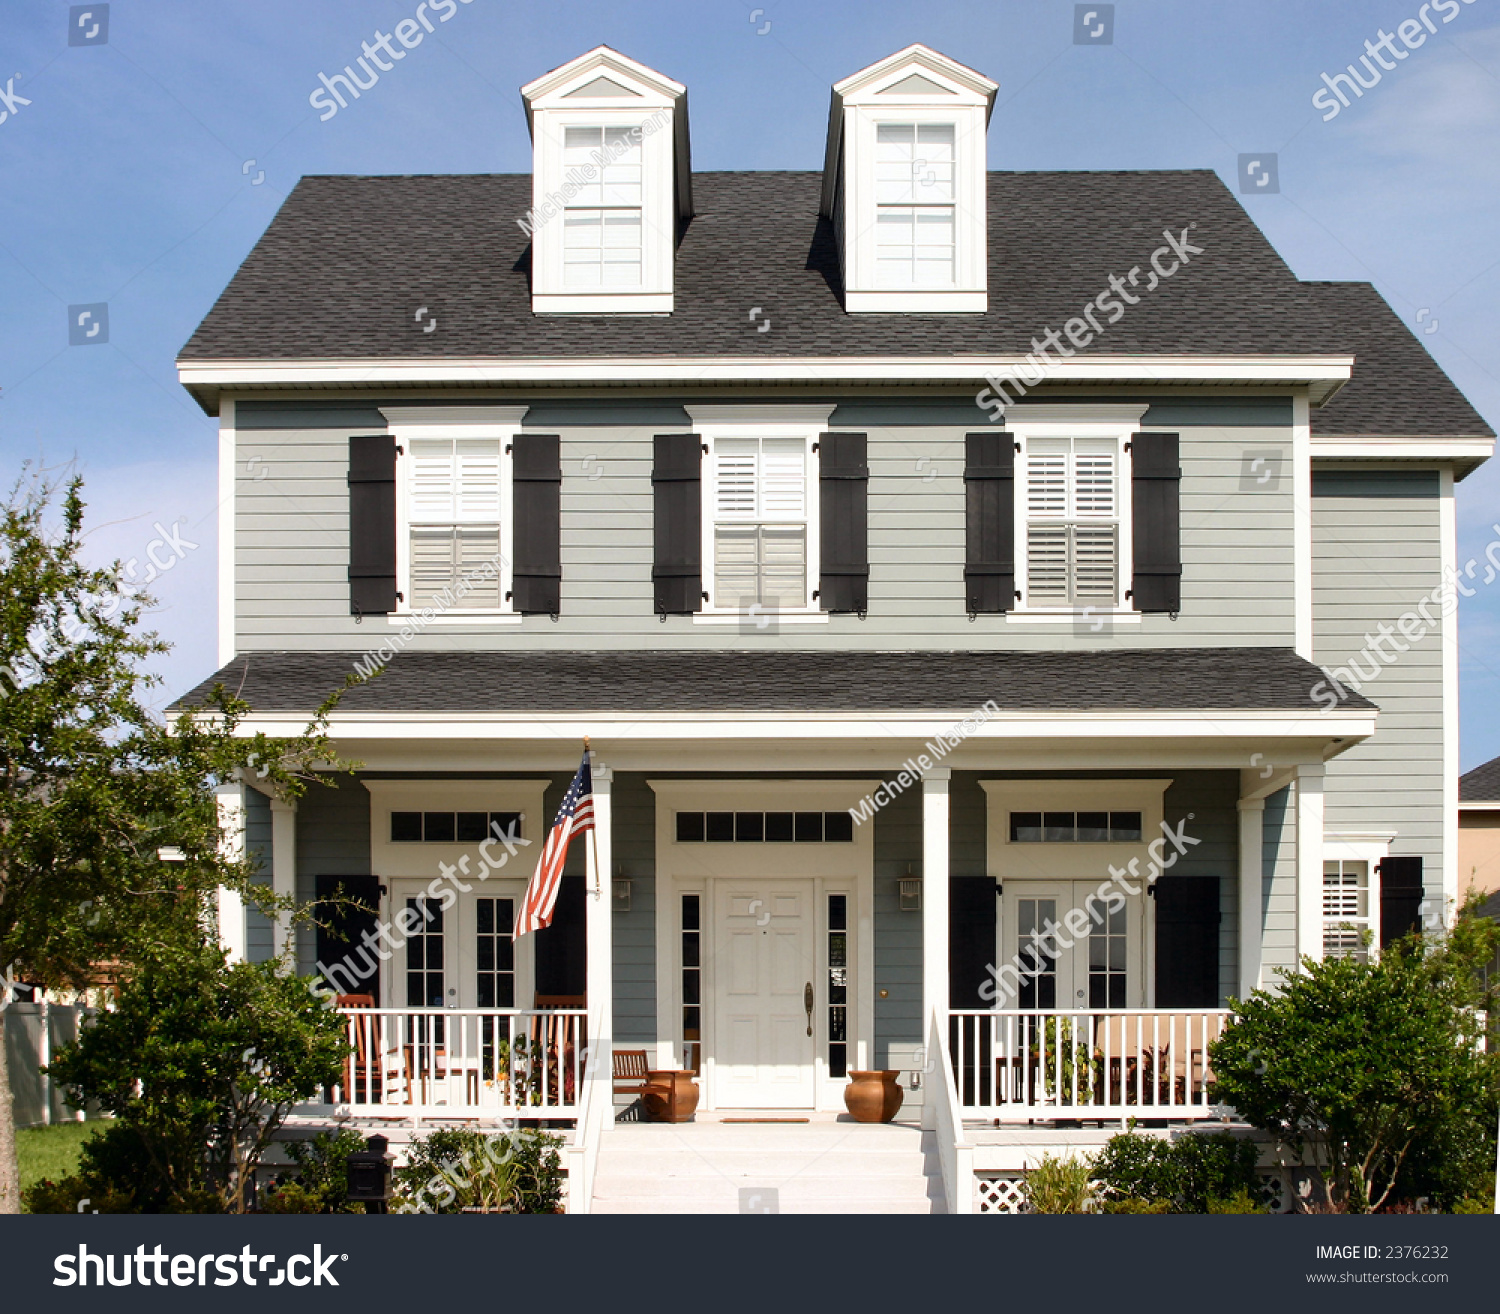 American Dream Home Stock Photo 2376232 Shutterstock